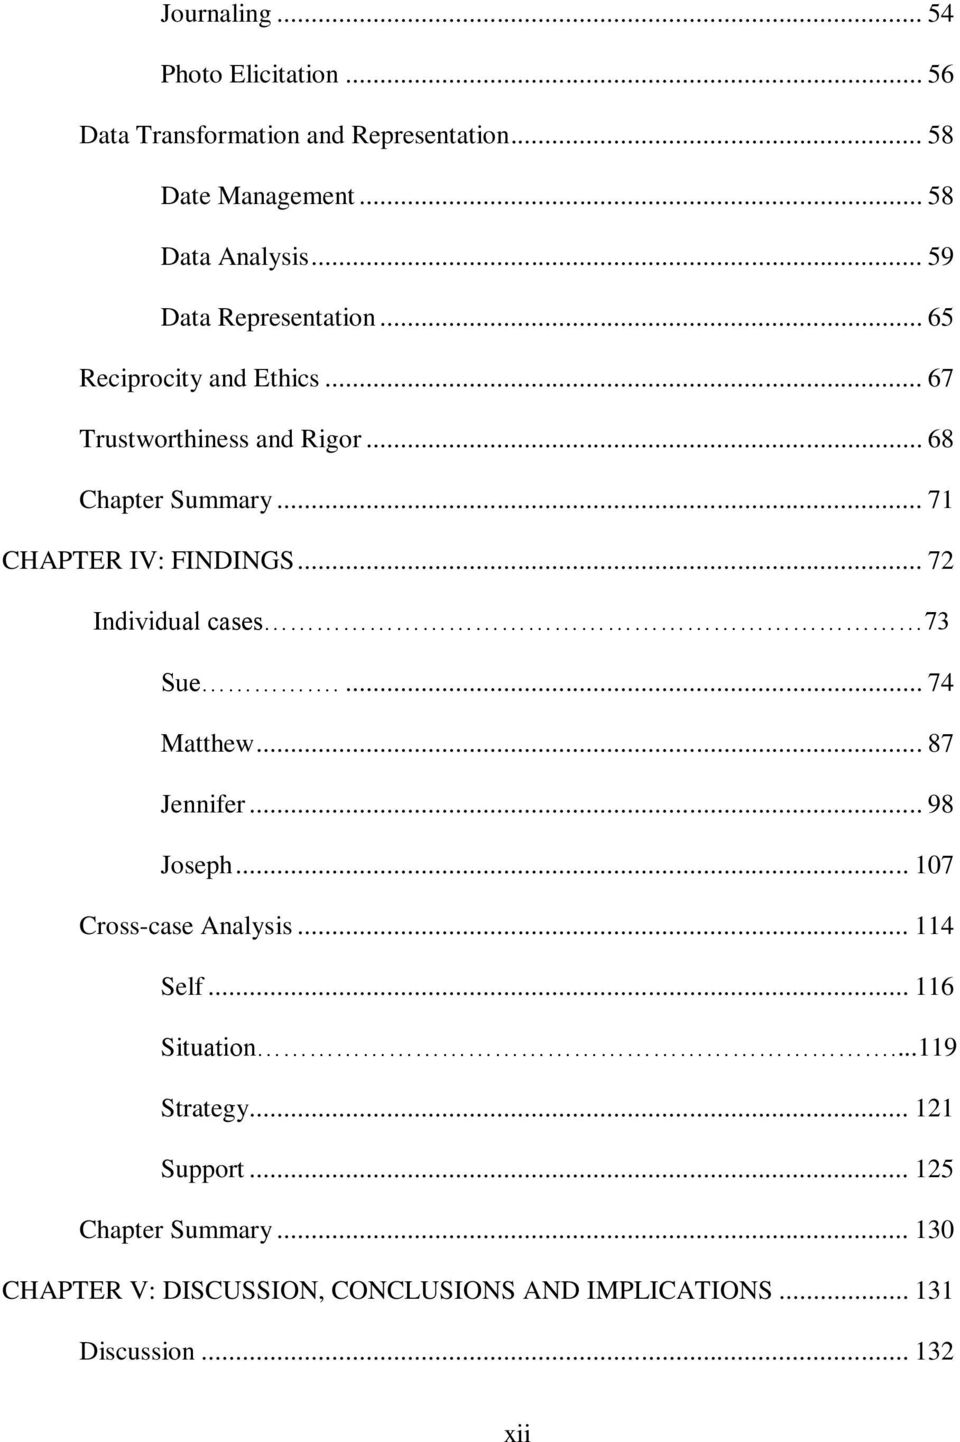 purpose discussion chapter dissertation